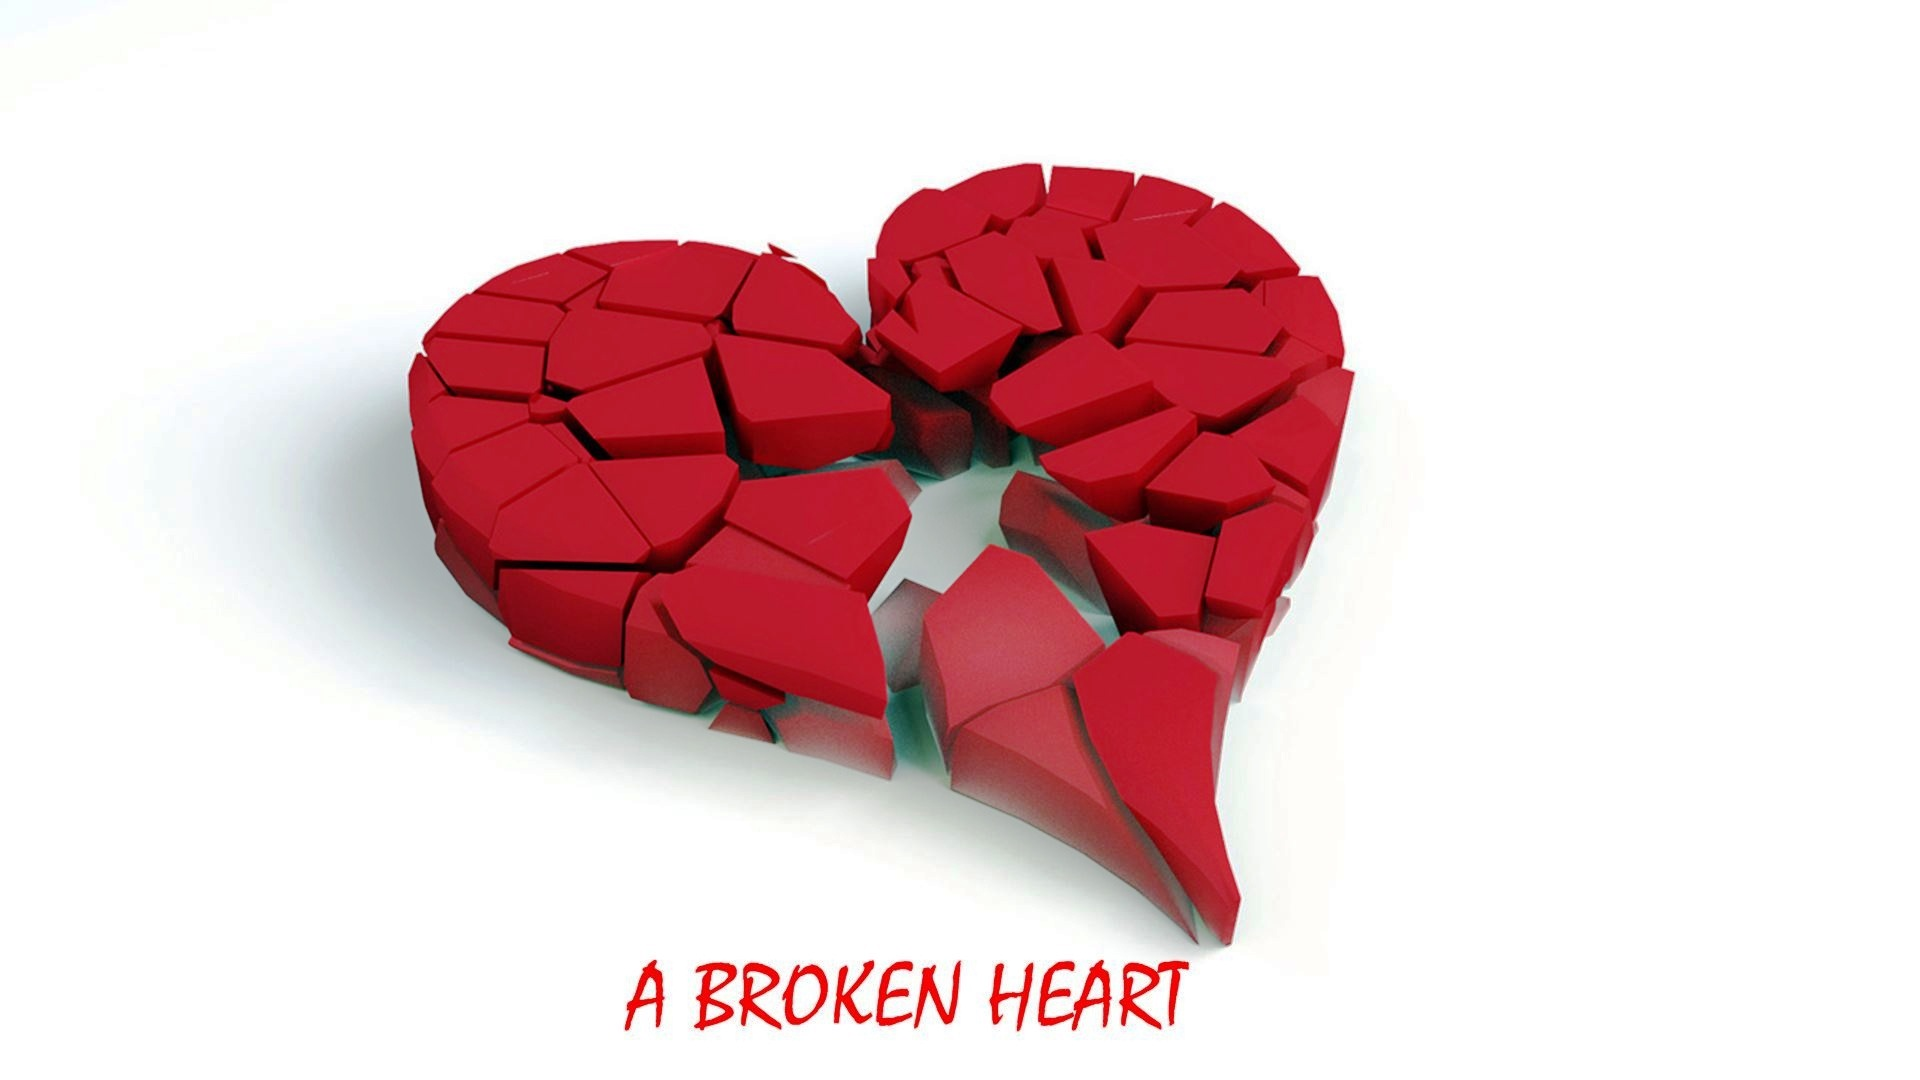 Broken heart sad love new wallpapers   New hd wallpaperNew 1920x1080